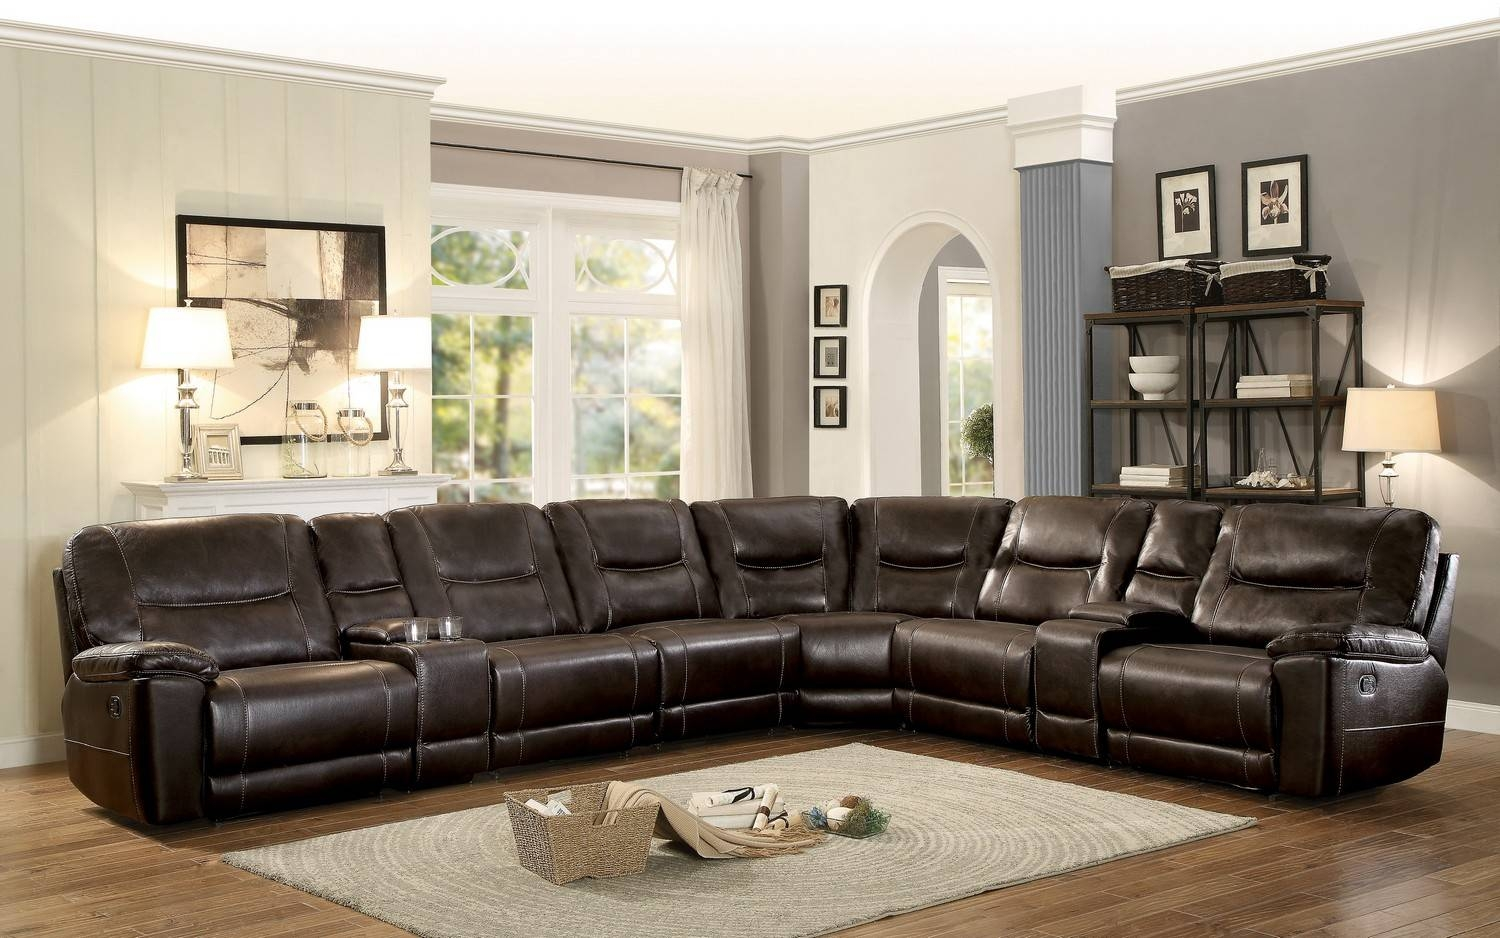 Homelegance Columbus Reclining Sectional Sofa Set A - Breathable in Recliner Sectional Sofas (Image 17 of 30)